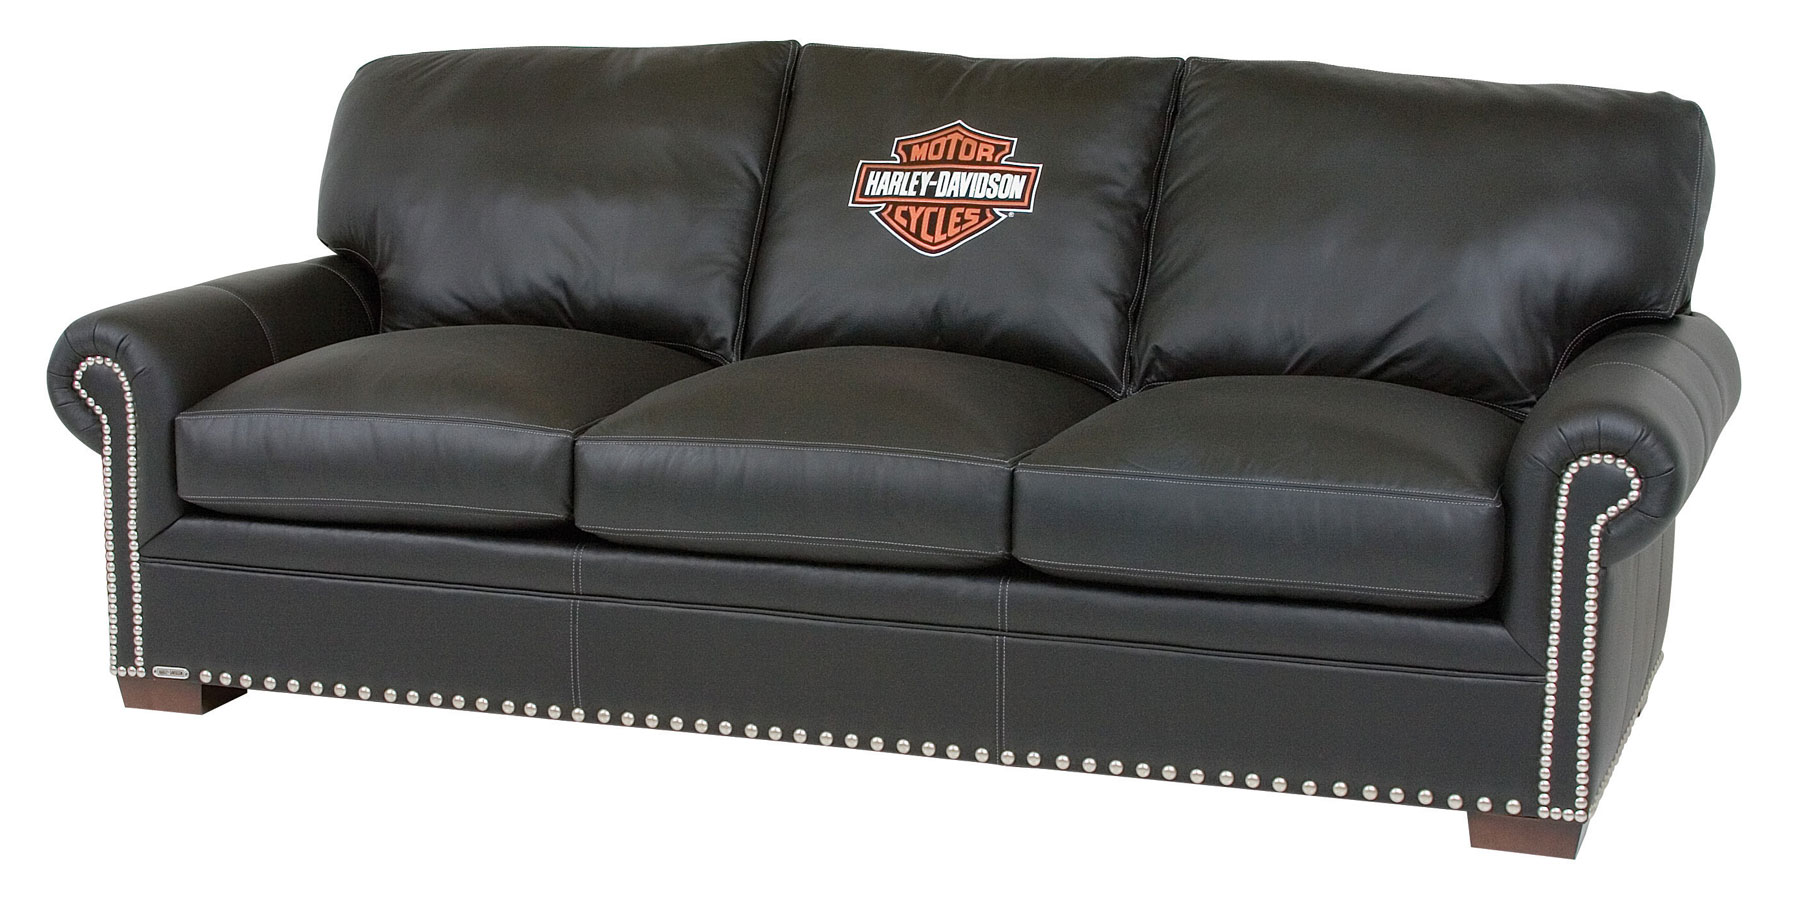 Harley Davidson Officially Licensed Black Leather  : harley davidson officially licensed black leather furniture collection 1 from www.clubfurniture.com size 1800 x 900 jpeg 218kB